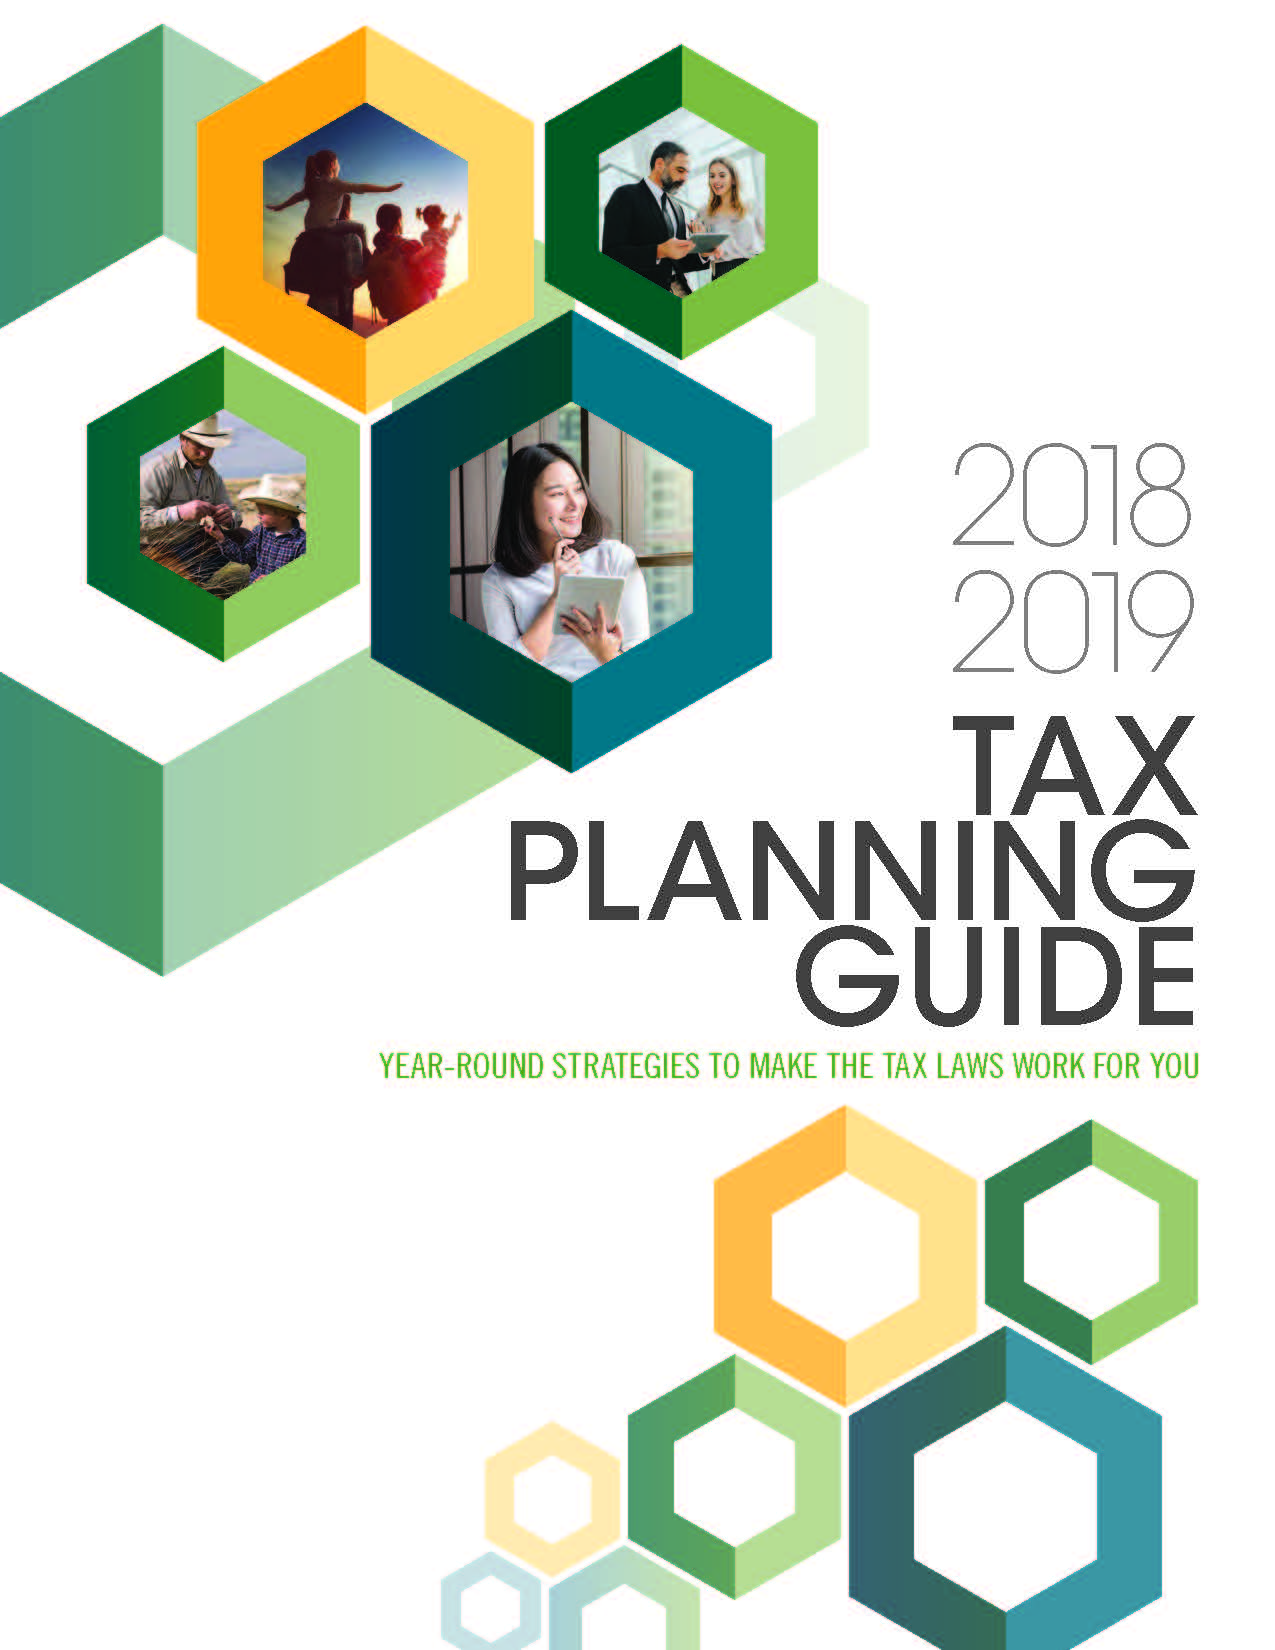 2018-2019 Tax Planning Guide